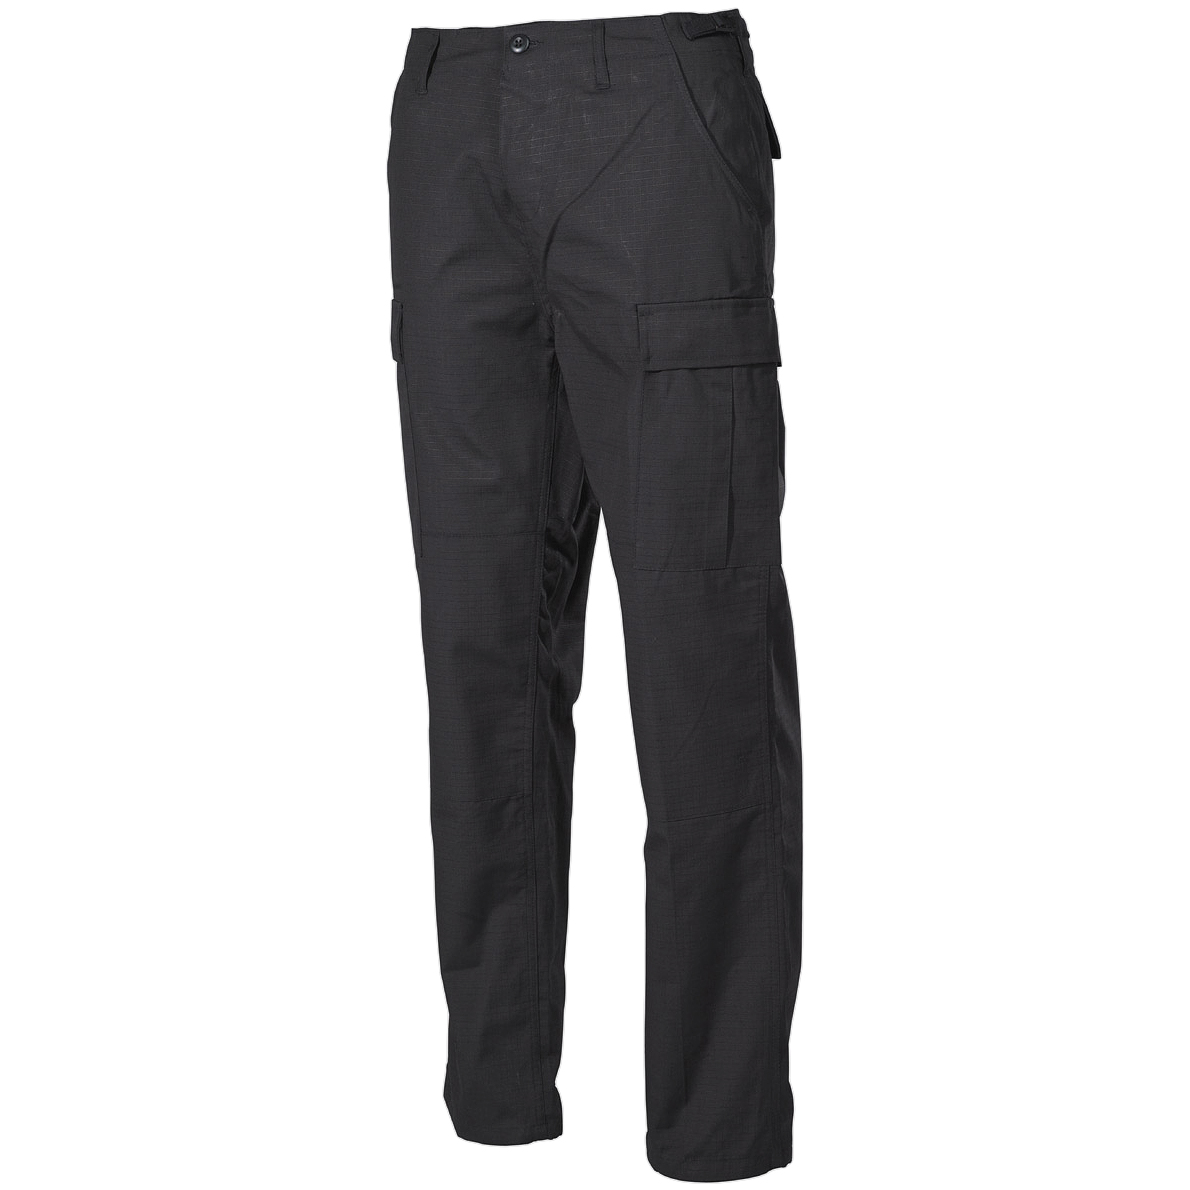 Cargo & Combat Trousers. Dickies cargo or combat trousers feature additional 'cargo' style pockets on either one or both of the outer legs. Combats take their name from their origins in the military; where they are typically loose cut pants designed for tough outdoor conditions.